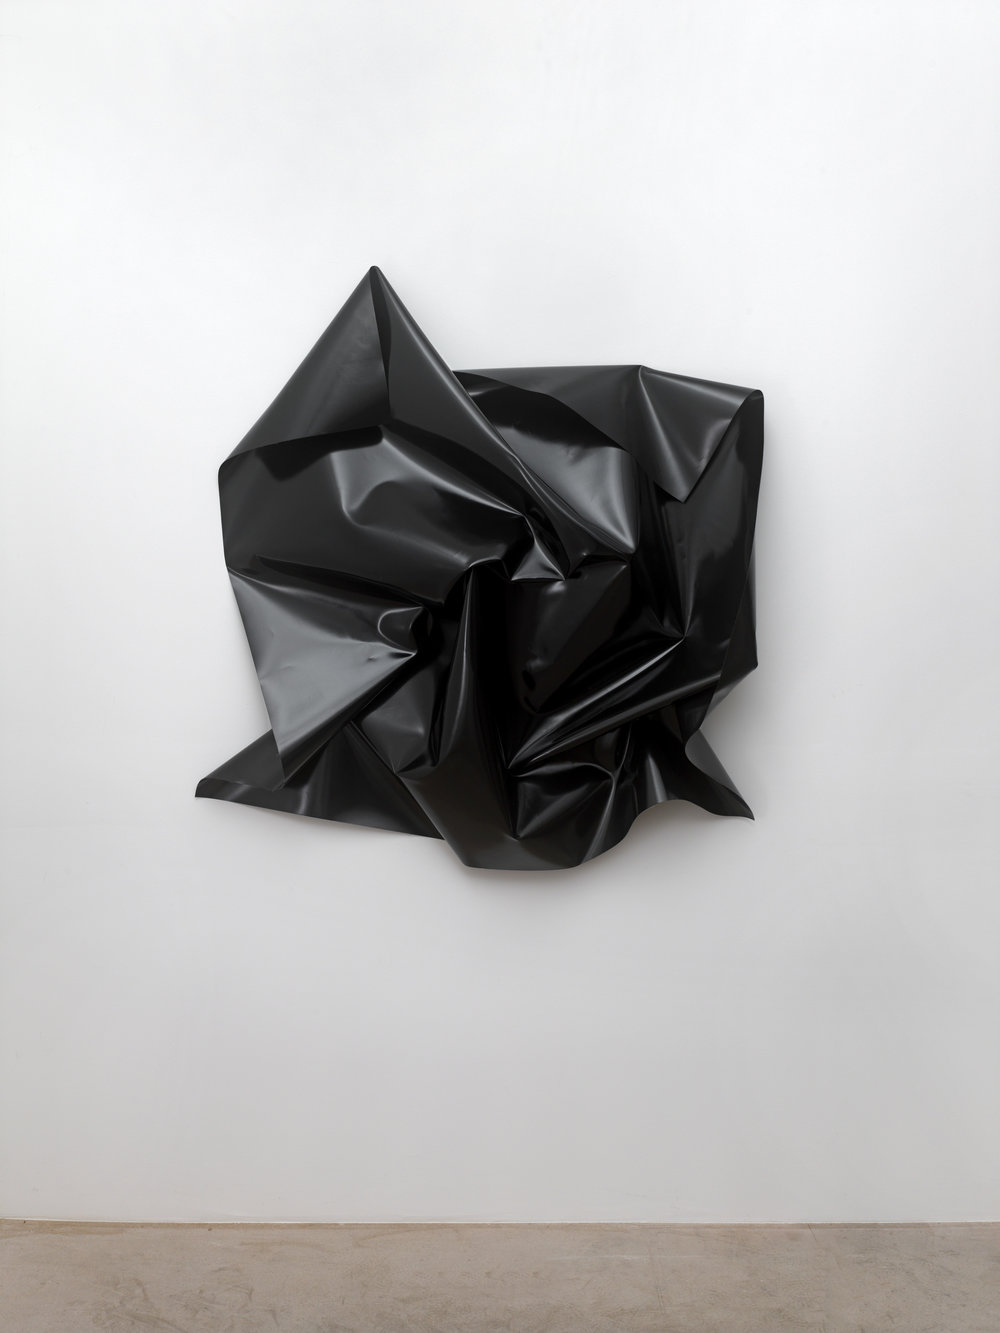 o.T., (untitled), 2013  PVC-tarpaulin (black), 4 brass screw closures, ca. 135 x 135 x 32 cm, dimensions of the tarpaulin: 150 x 150 cm